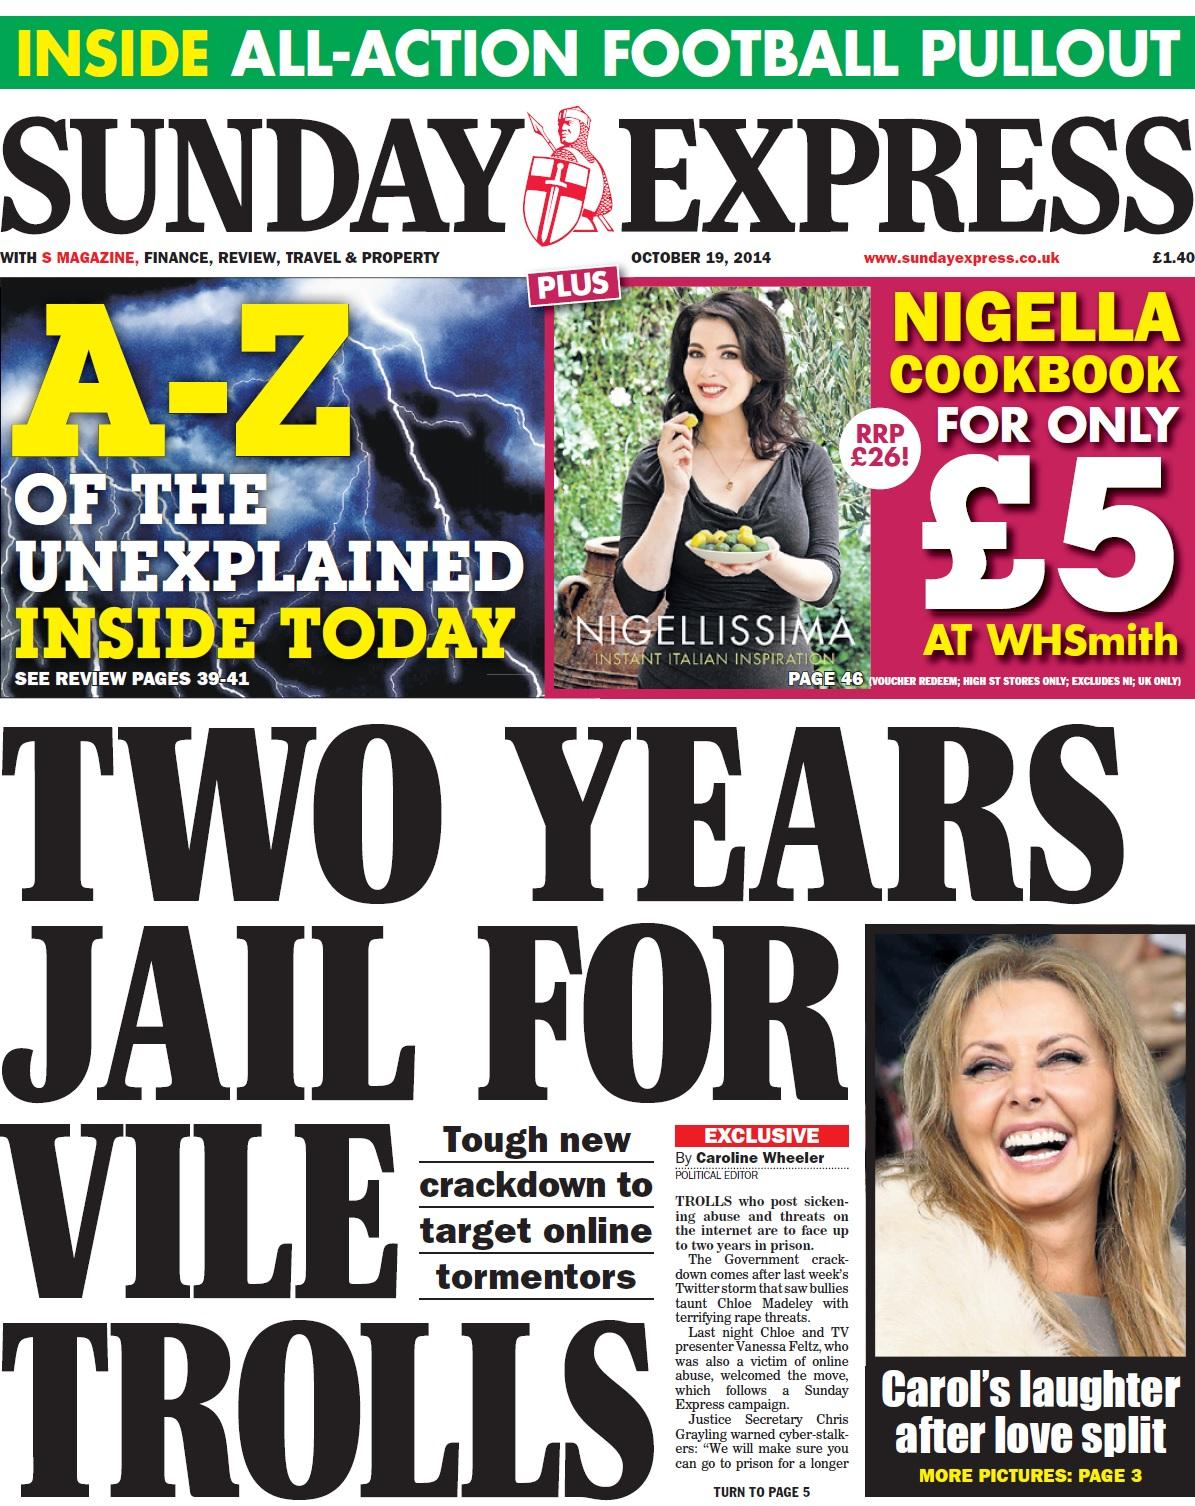 TWO YEARS FOR VILE TROLLS - Sunday Express B0QJM94CQAAysur